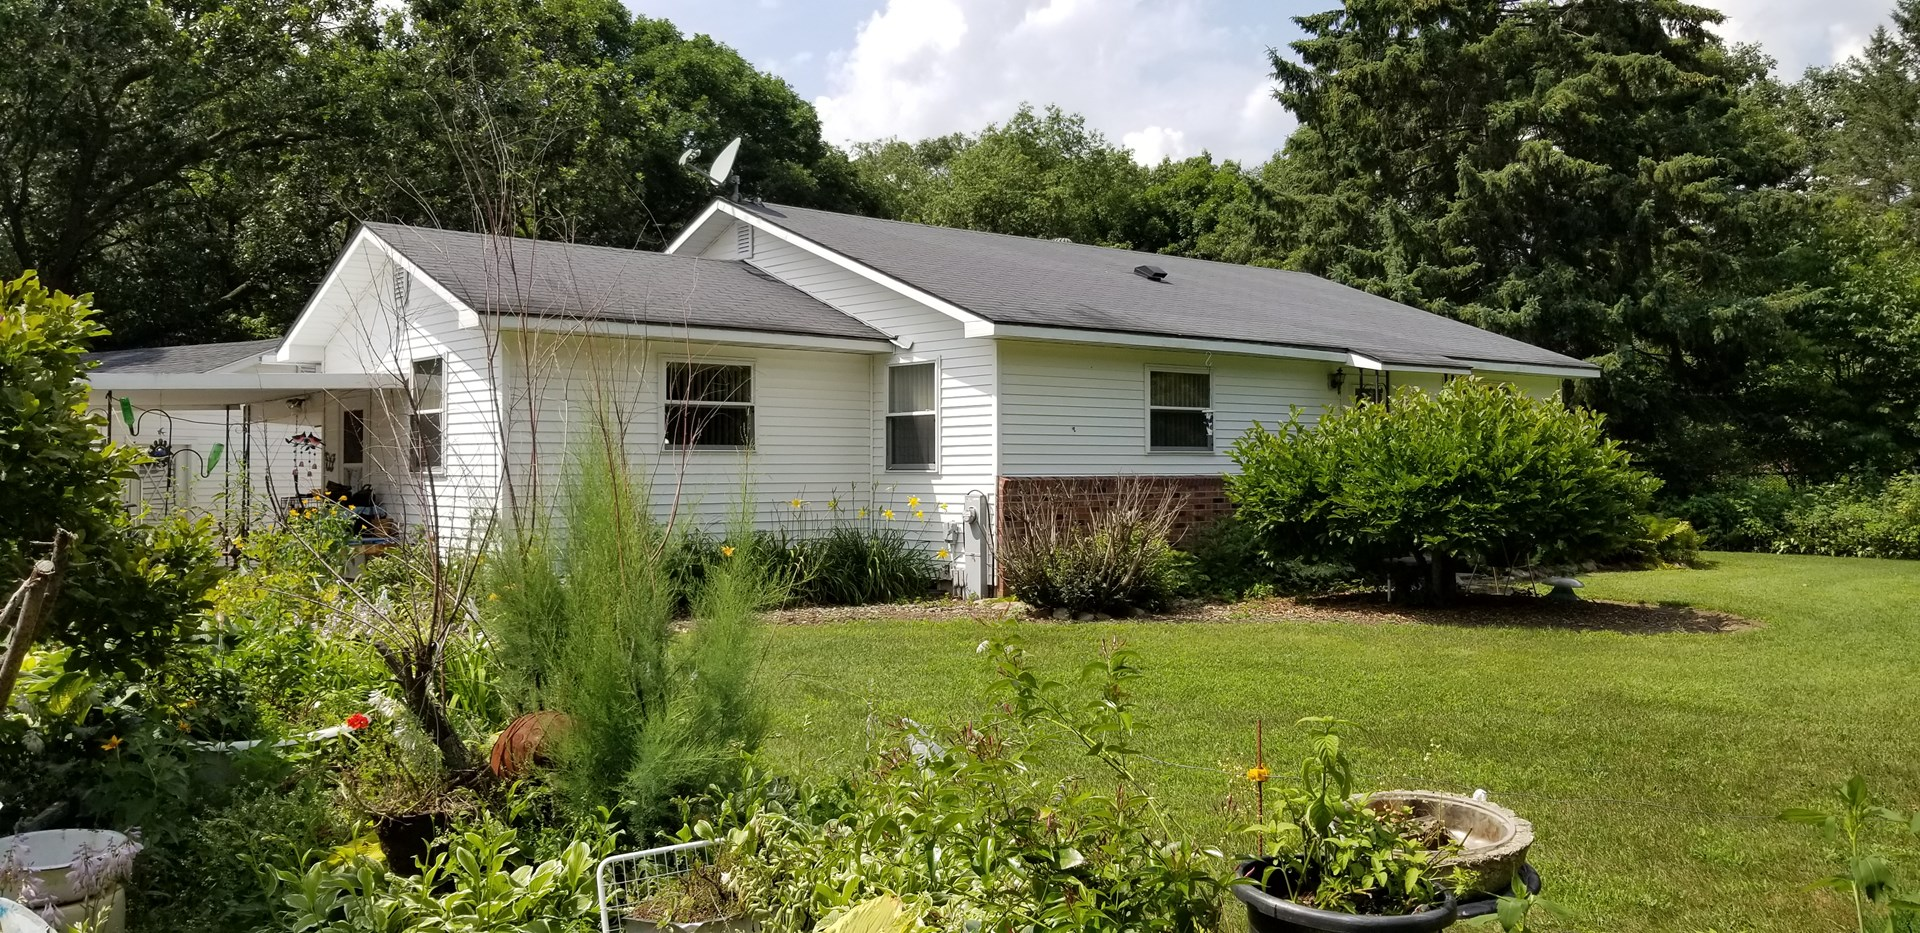 Country Home / Farmette for Sale in Waupaca WI